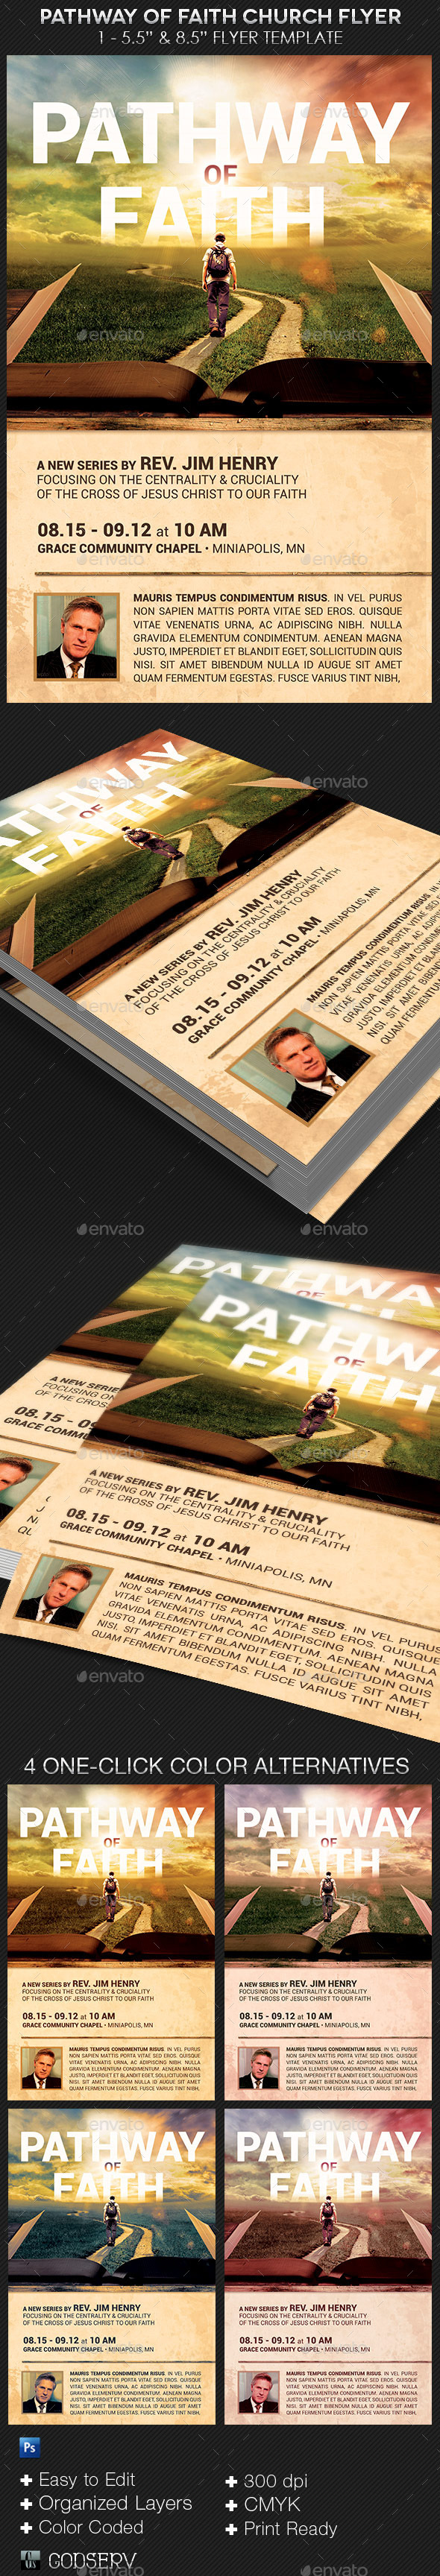 GraphicRiver Pathway of Faith Church Flyer Template 9276889